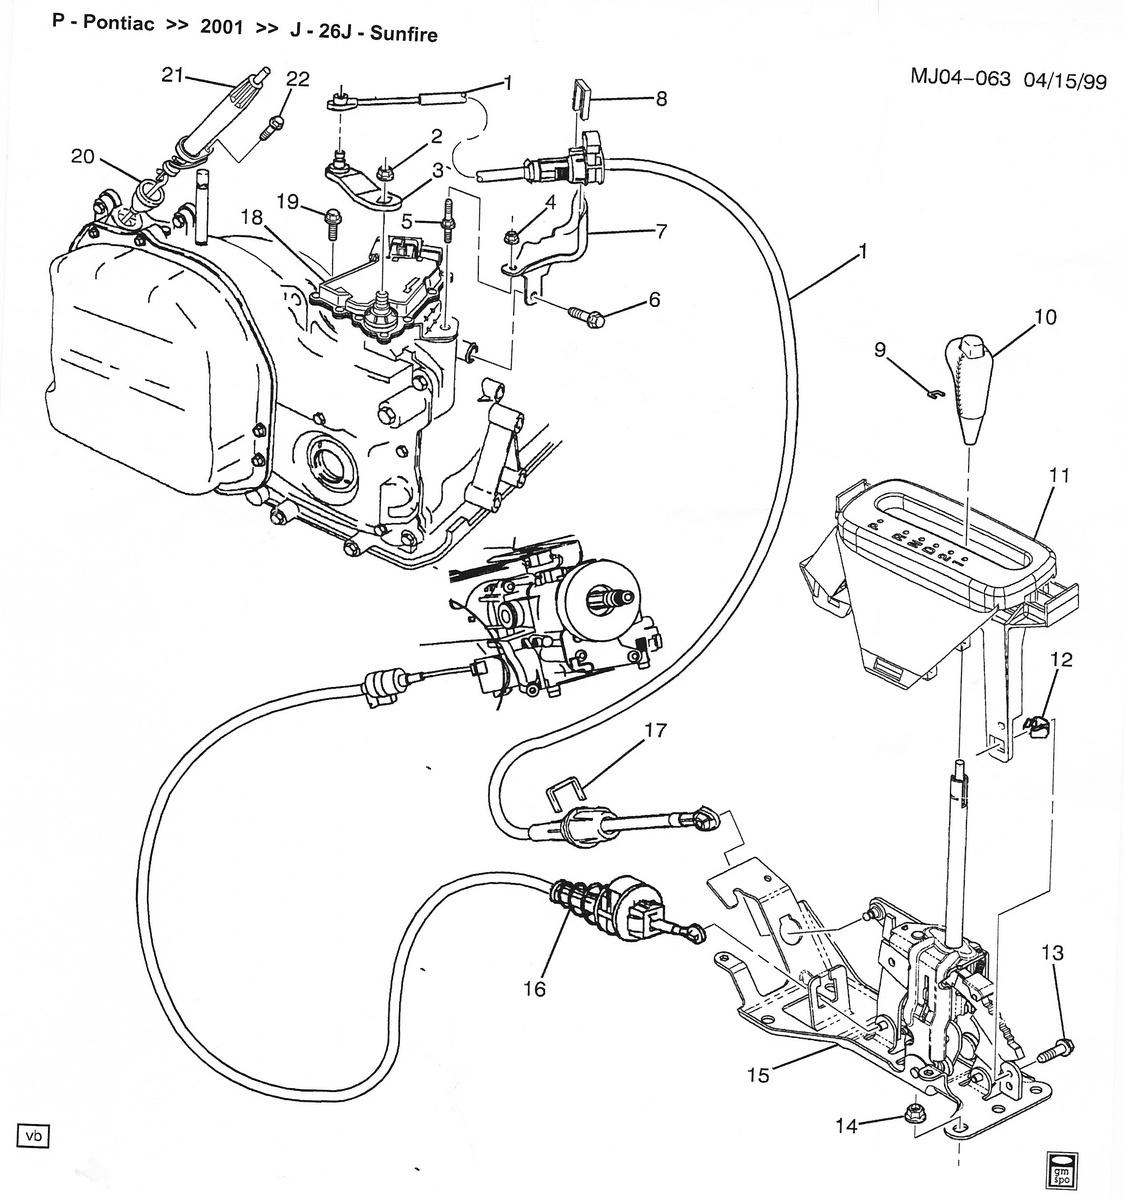 75 Cadillac Steering Column Wiring Diagram further T15018473 Ford crown victoria neutral safety further 4cr5u Ford F150 Pickup 4x4 2000 F150 4x4 5 4l Ext Cab besides Discussion D608 ds527417 as well 2wona Chuck Having Problem Steering Column Lock. on 2002 ford focus shift linkage